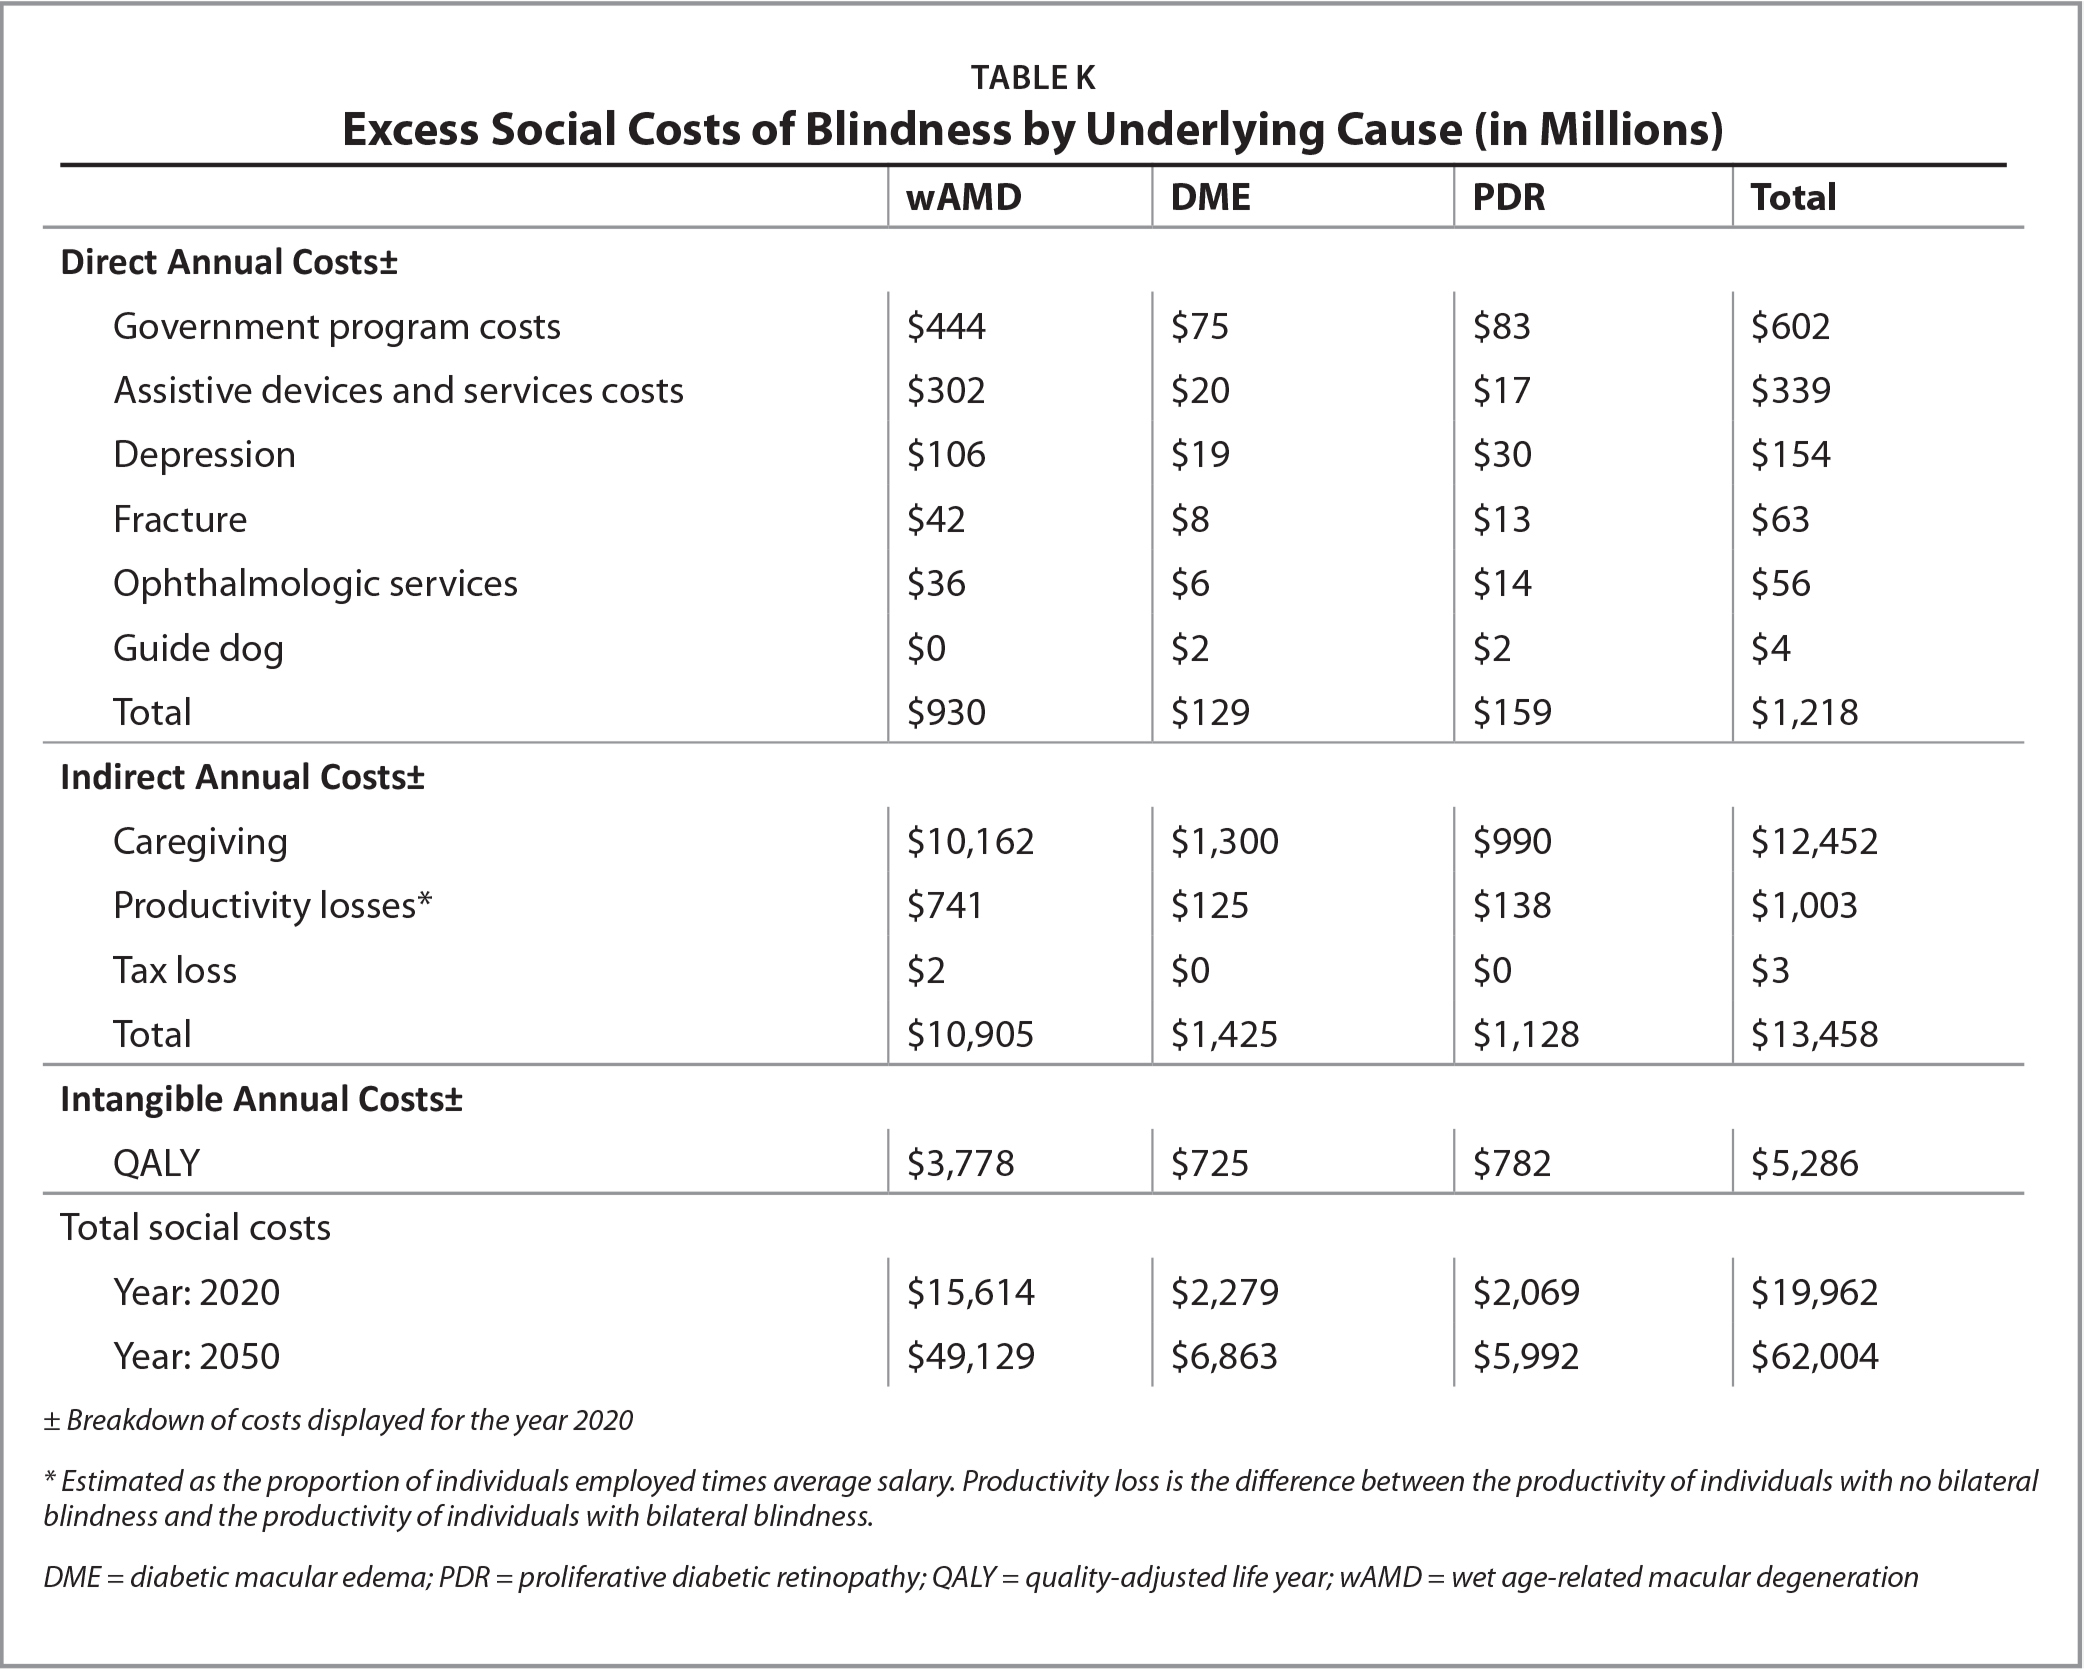 Excess Social Costs of Blindness by Underlying Cause (in Millions)